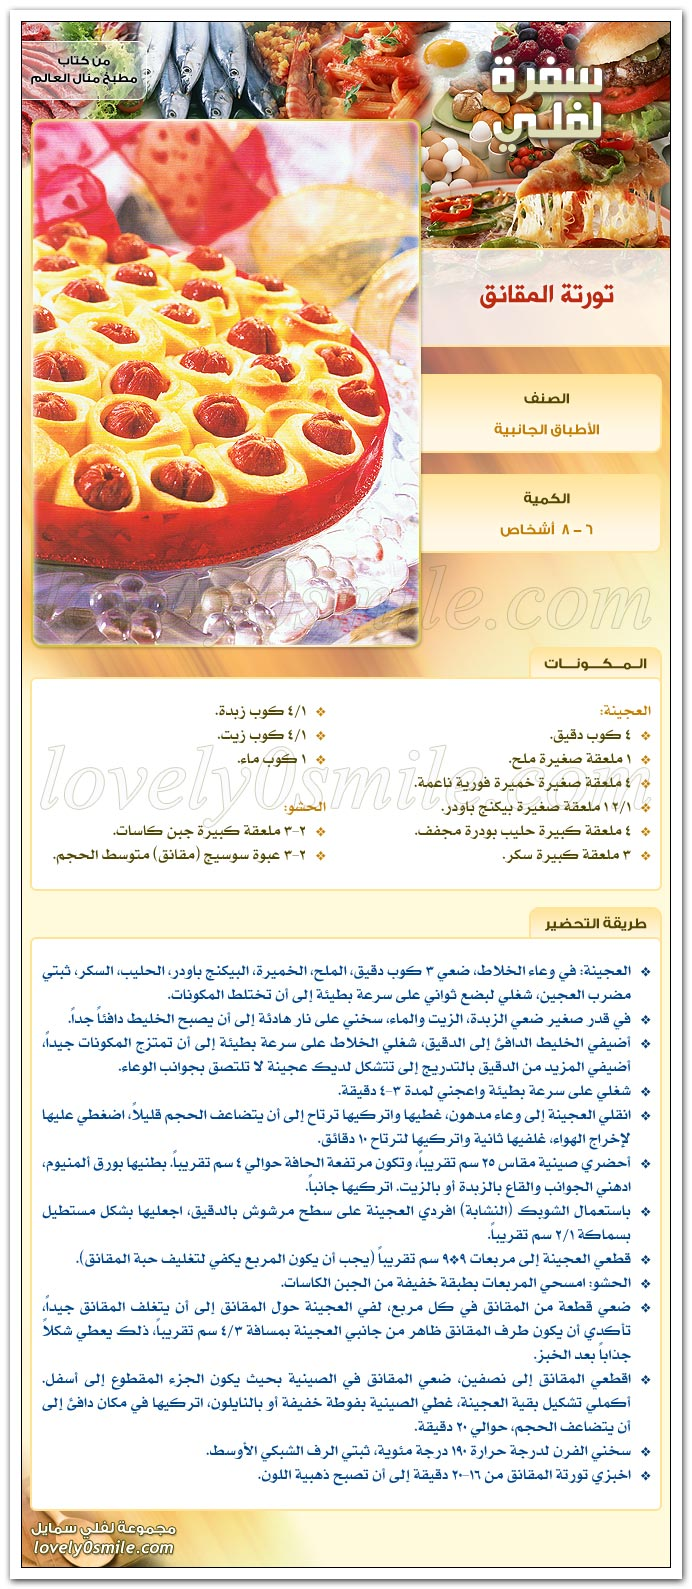 http://www.qassimy.com/up/users/qassimy/manal_alalem_cookbook_recipes_cooking_19.jpg